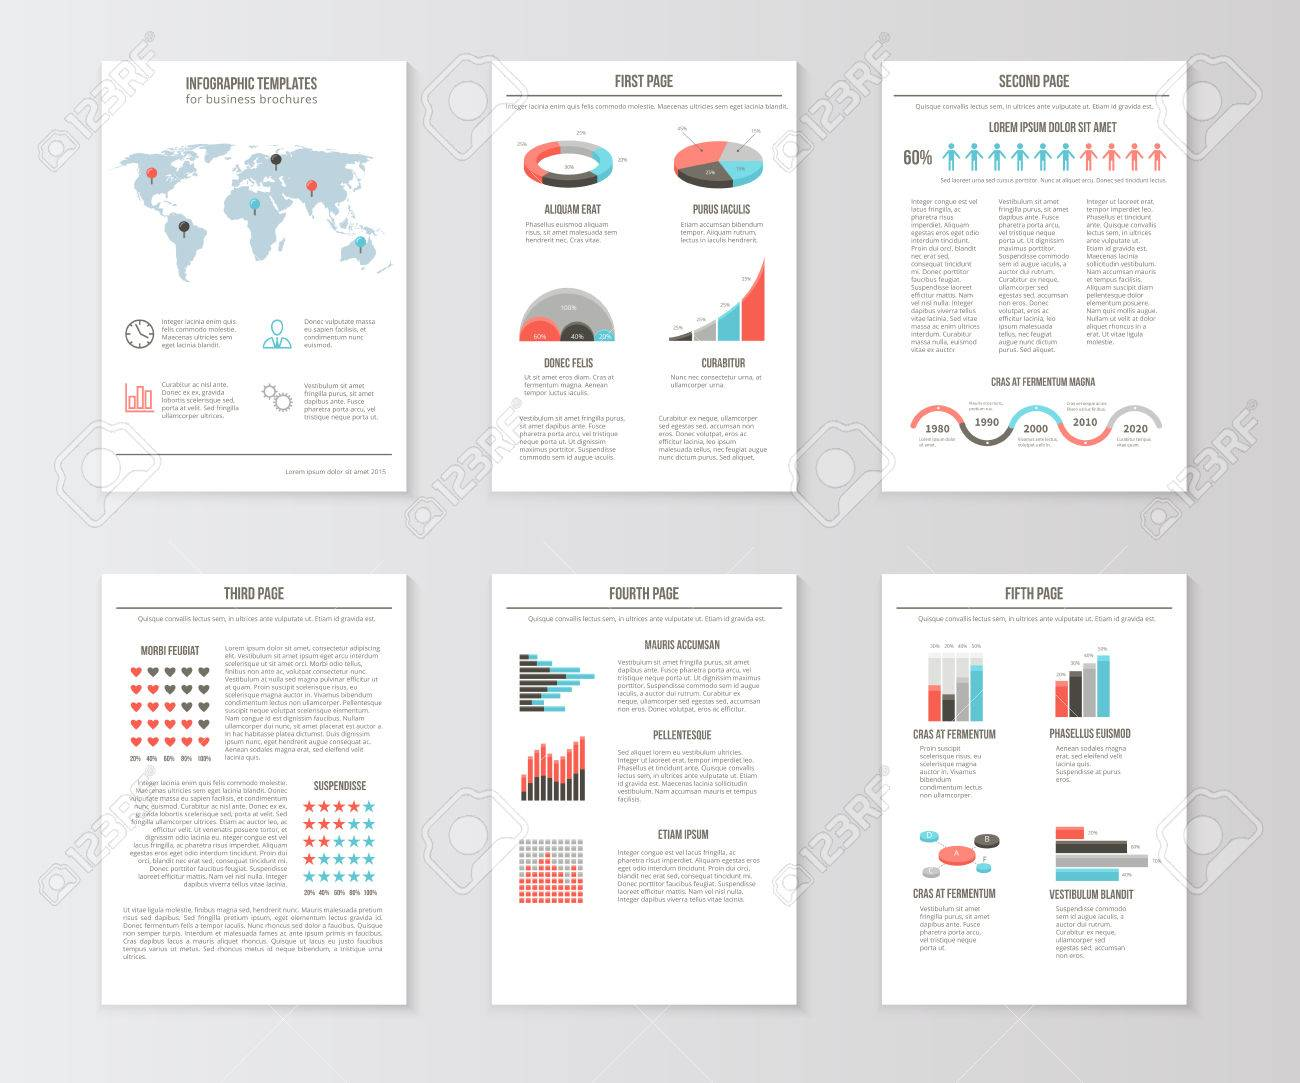 Business templates for pages boatremyeaton business templates for pages cheaphphosting